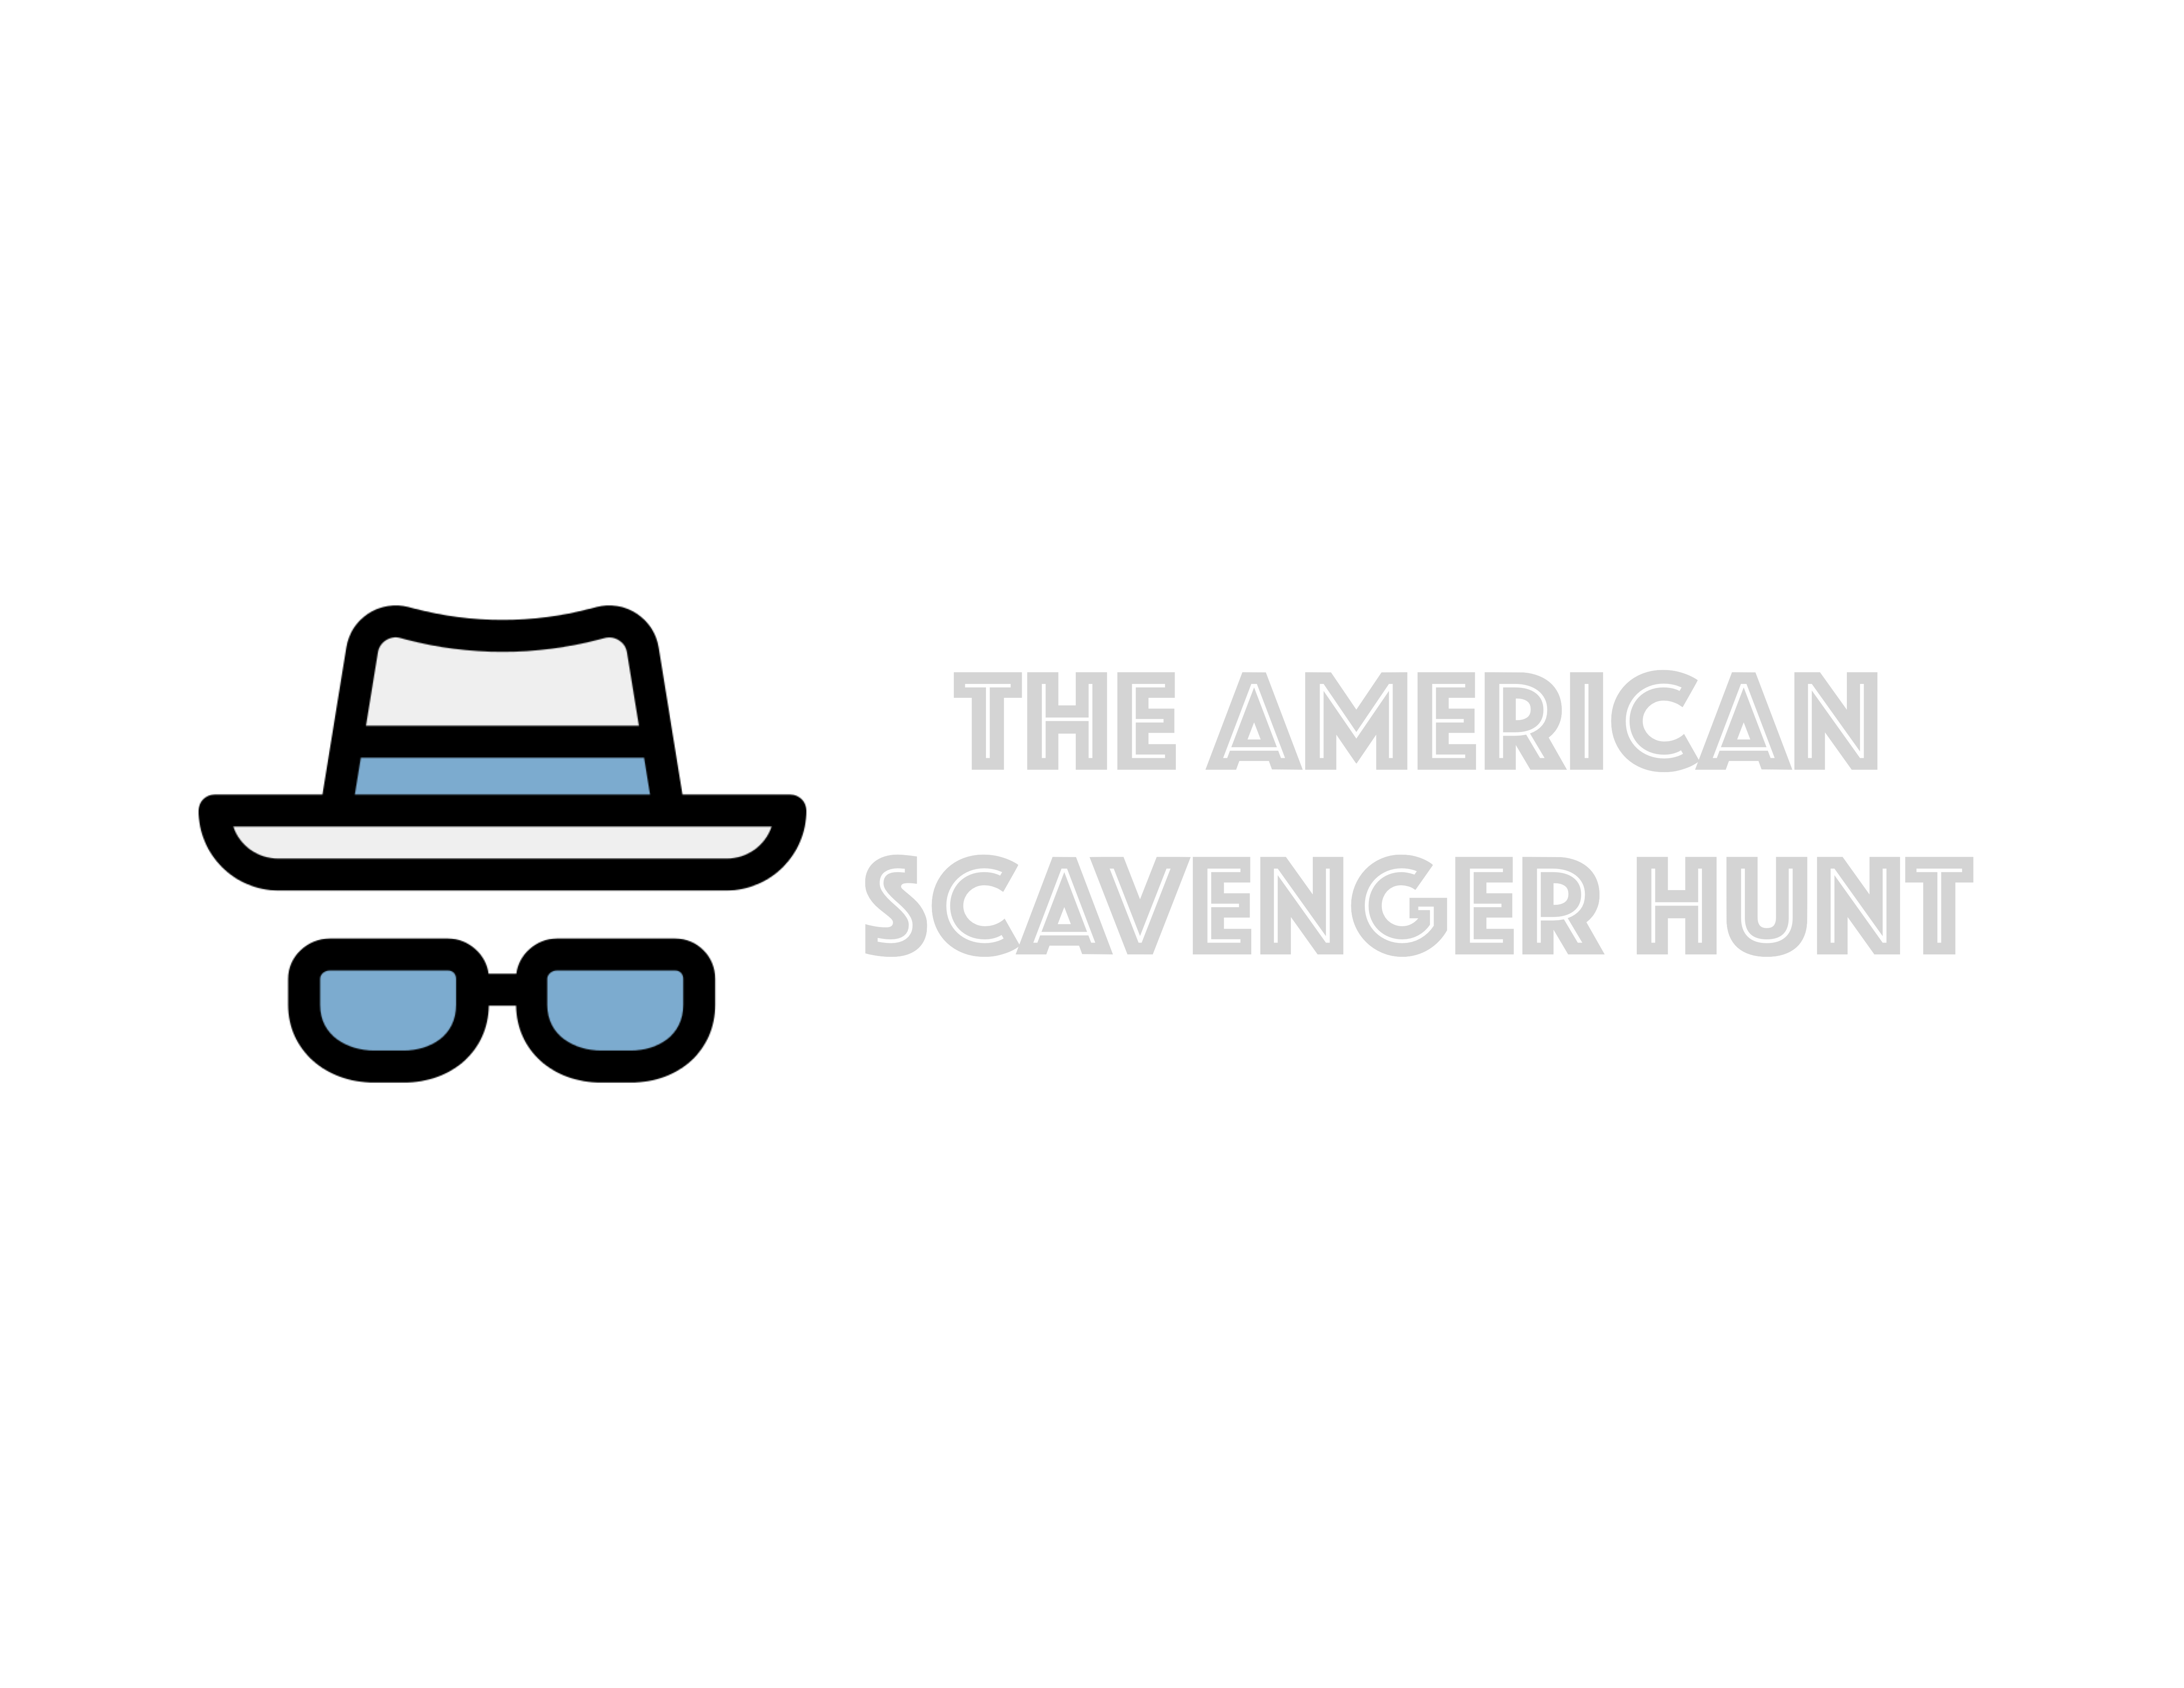 Scavenger Hunter USA – Scavenger Hunts With Great Prizes!